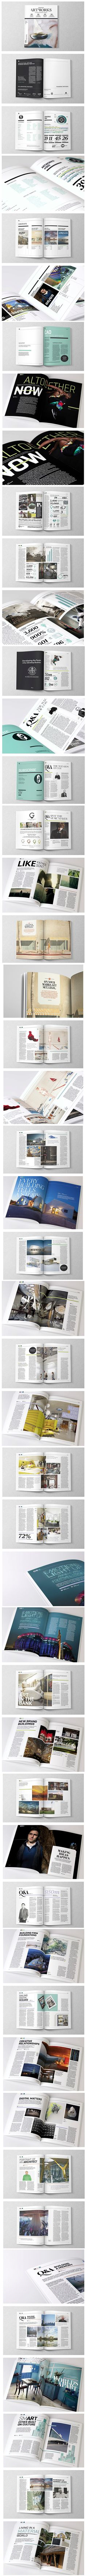 Artworks - The Arts & Business Journal #002 by The Design Surgery